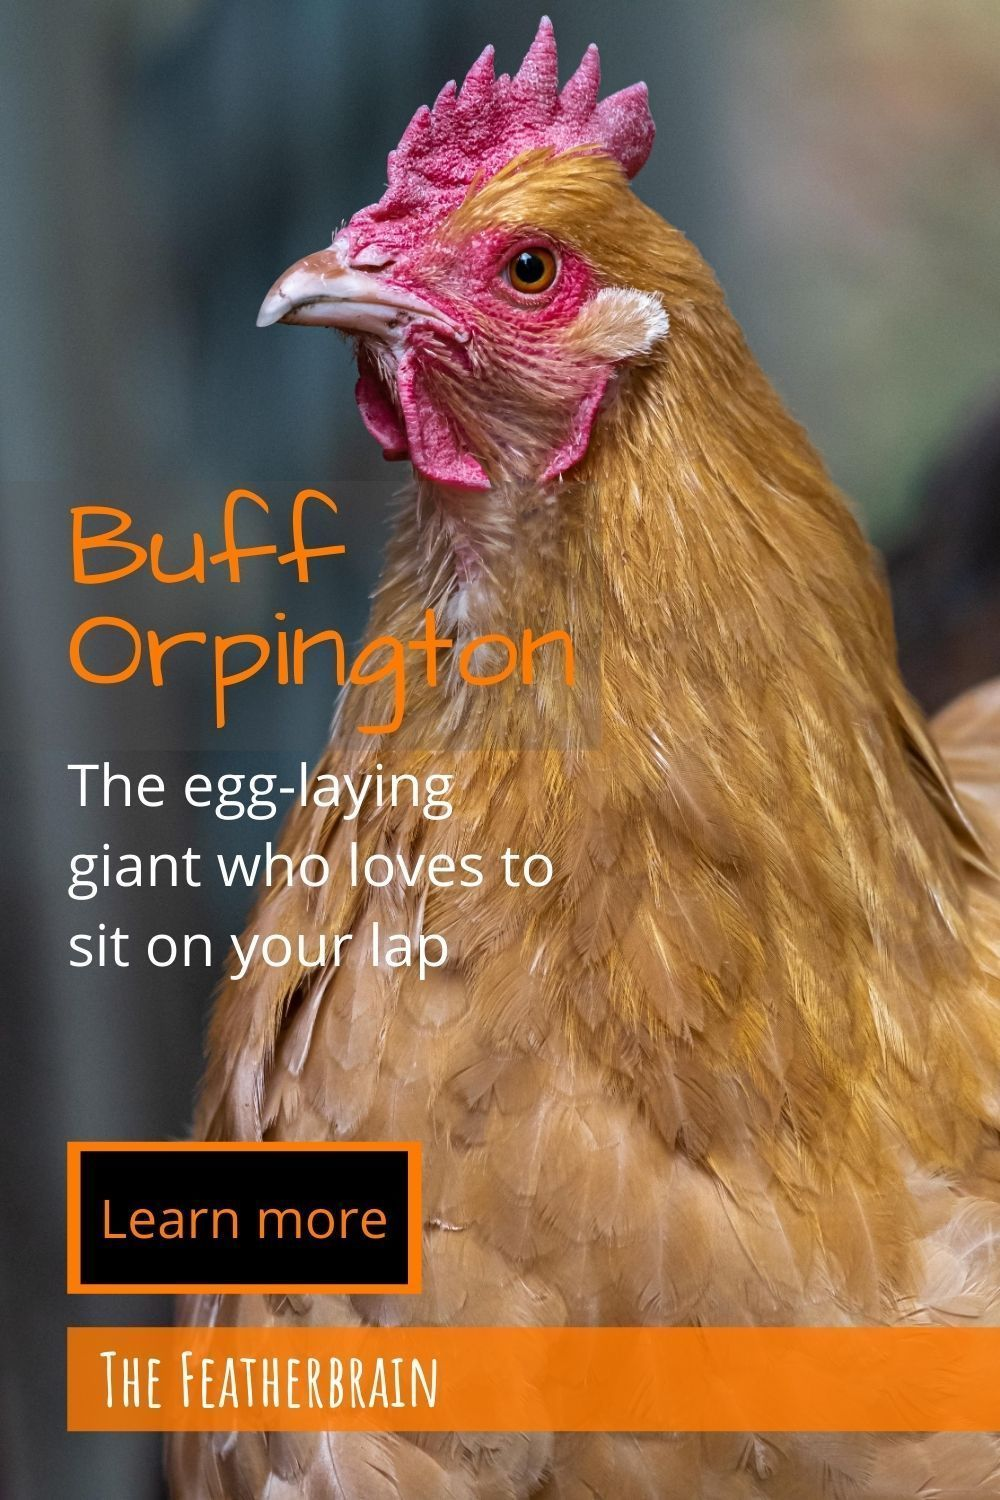 Buff Orpington: The egg-laying giant who loves to